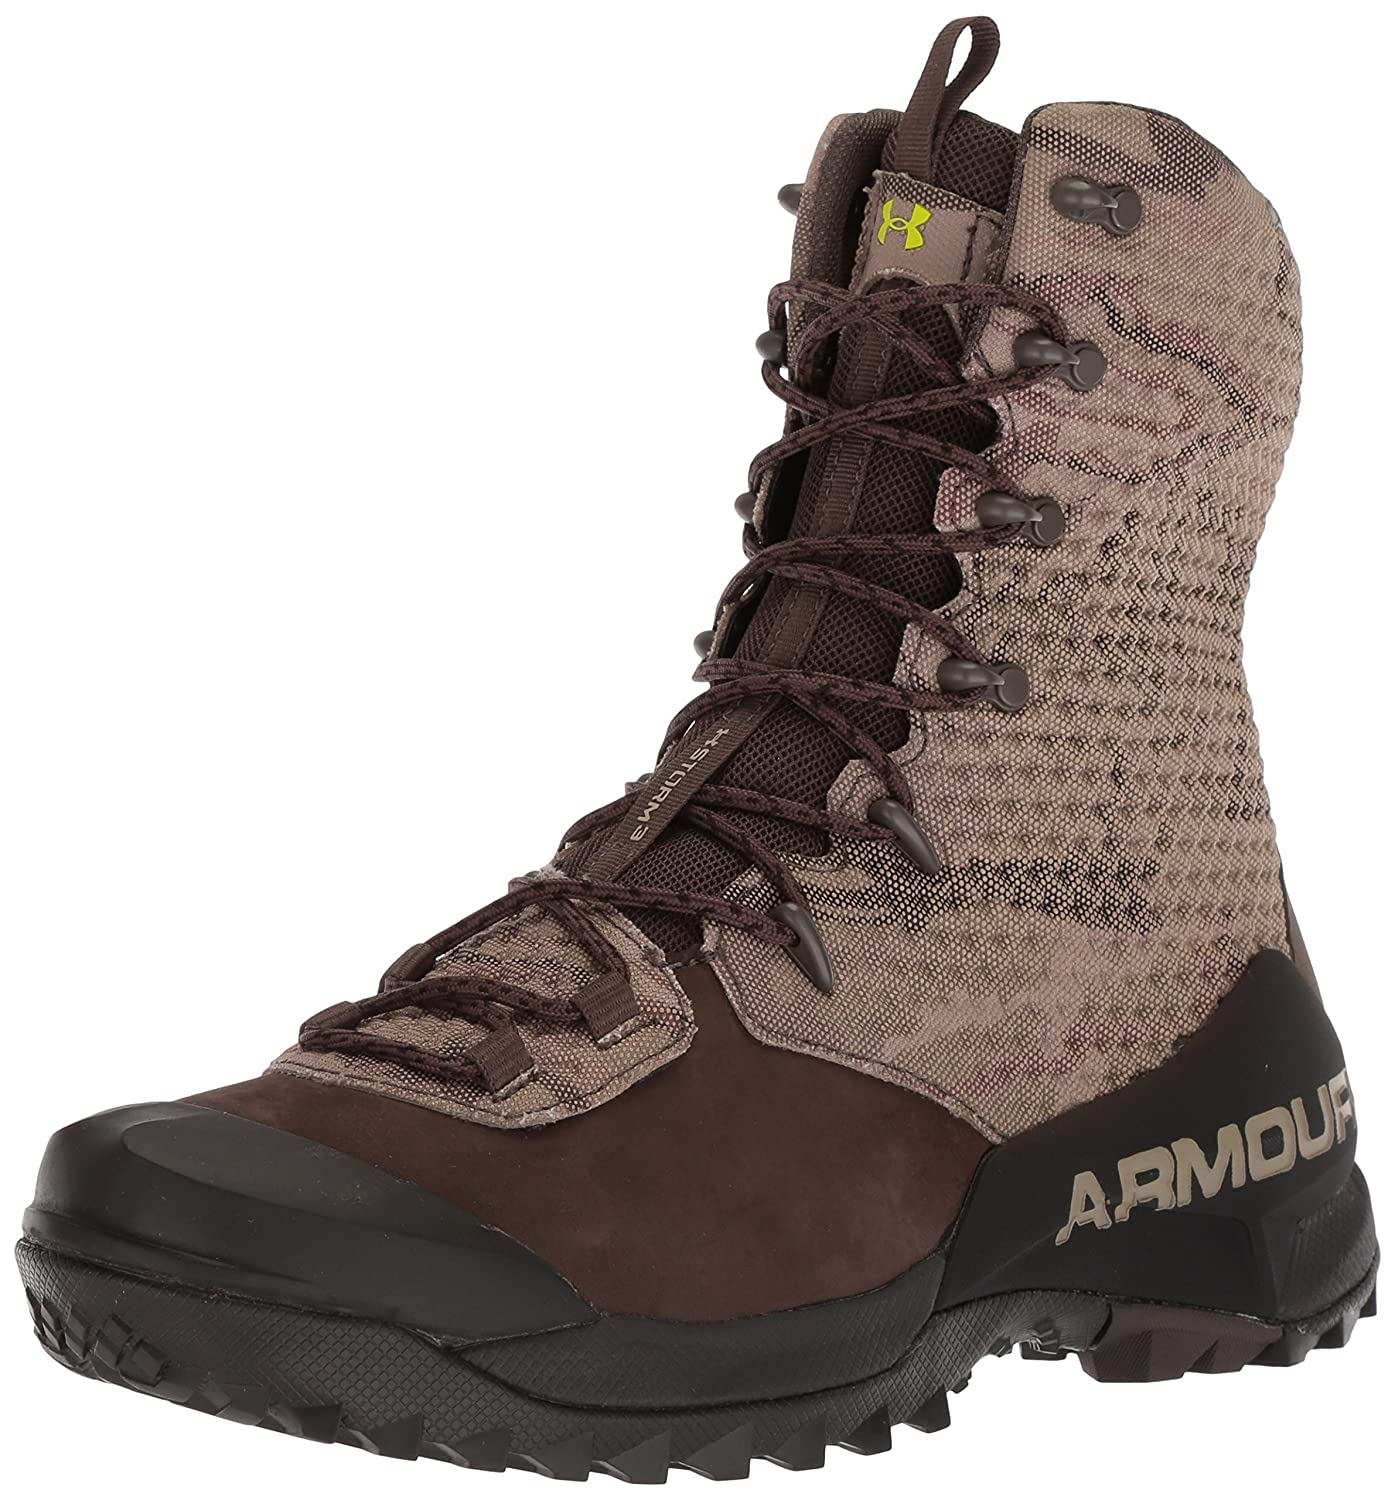 919a586f17b Under Armour Men's Infil Ops Gore-Tex Military and Tactical Boot ...